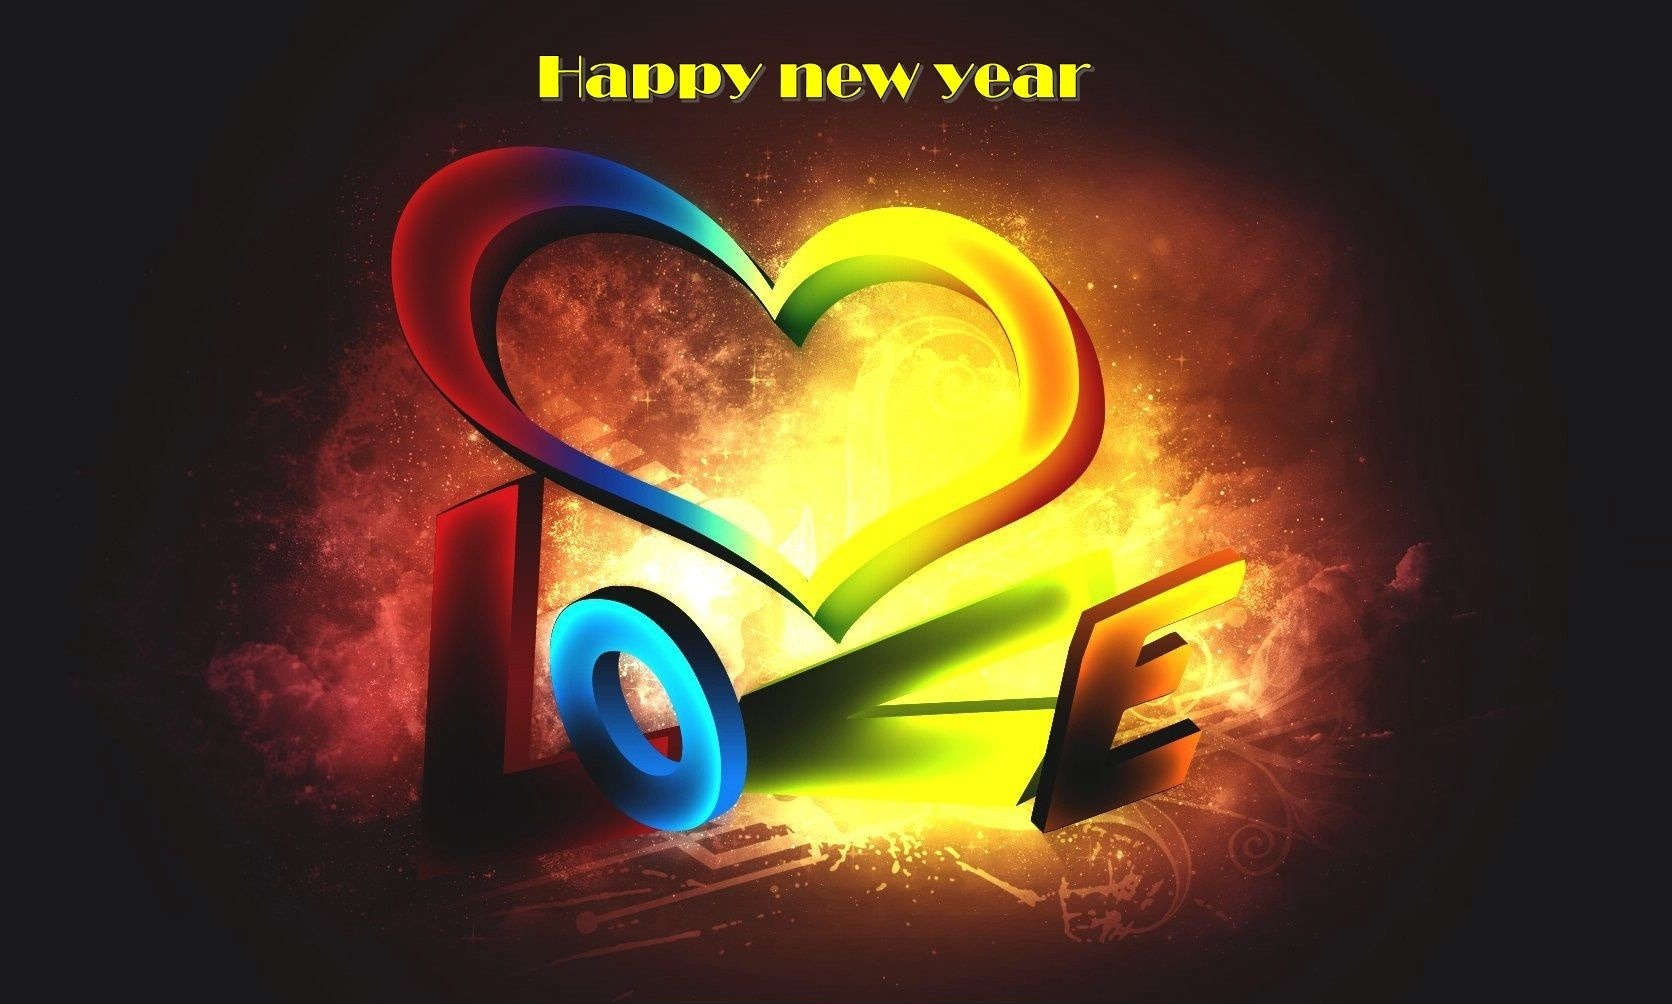 Awesome 3d Wallpaper Happy New Year 2015 With Love Freshboo